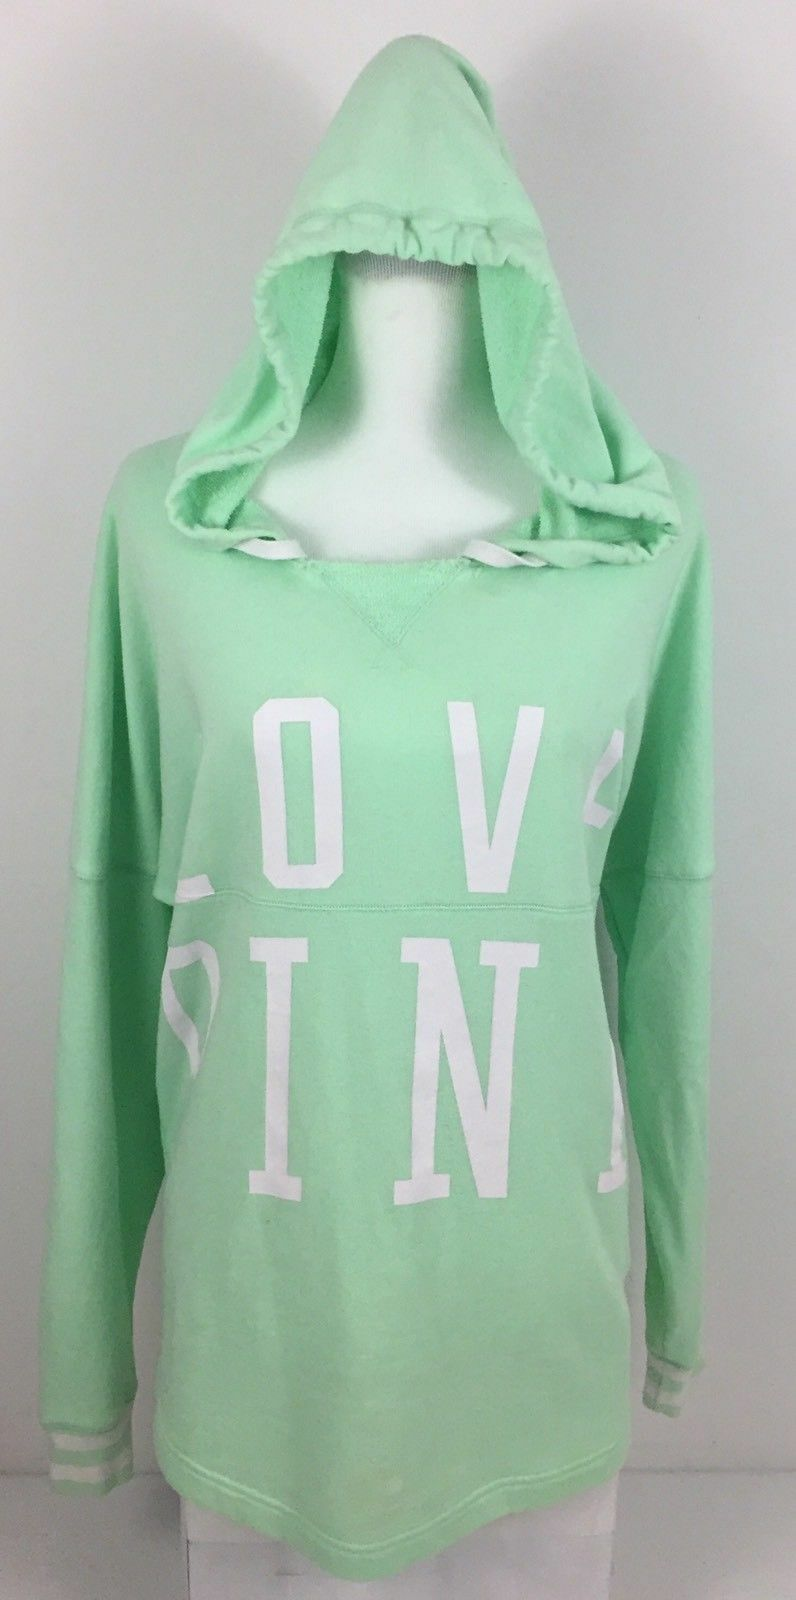 VICTORIA'S SECRET LOVE PINK Varsity Hoodie GREEN SWEATSHIRT pullover loose white